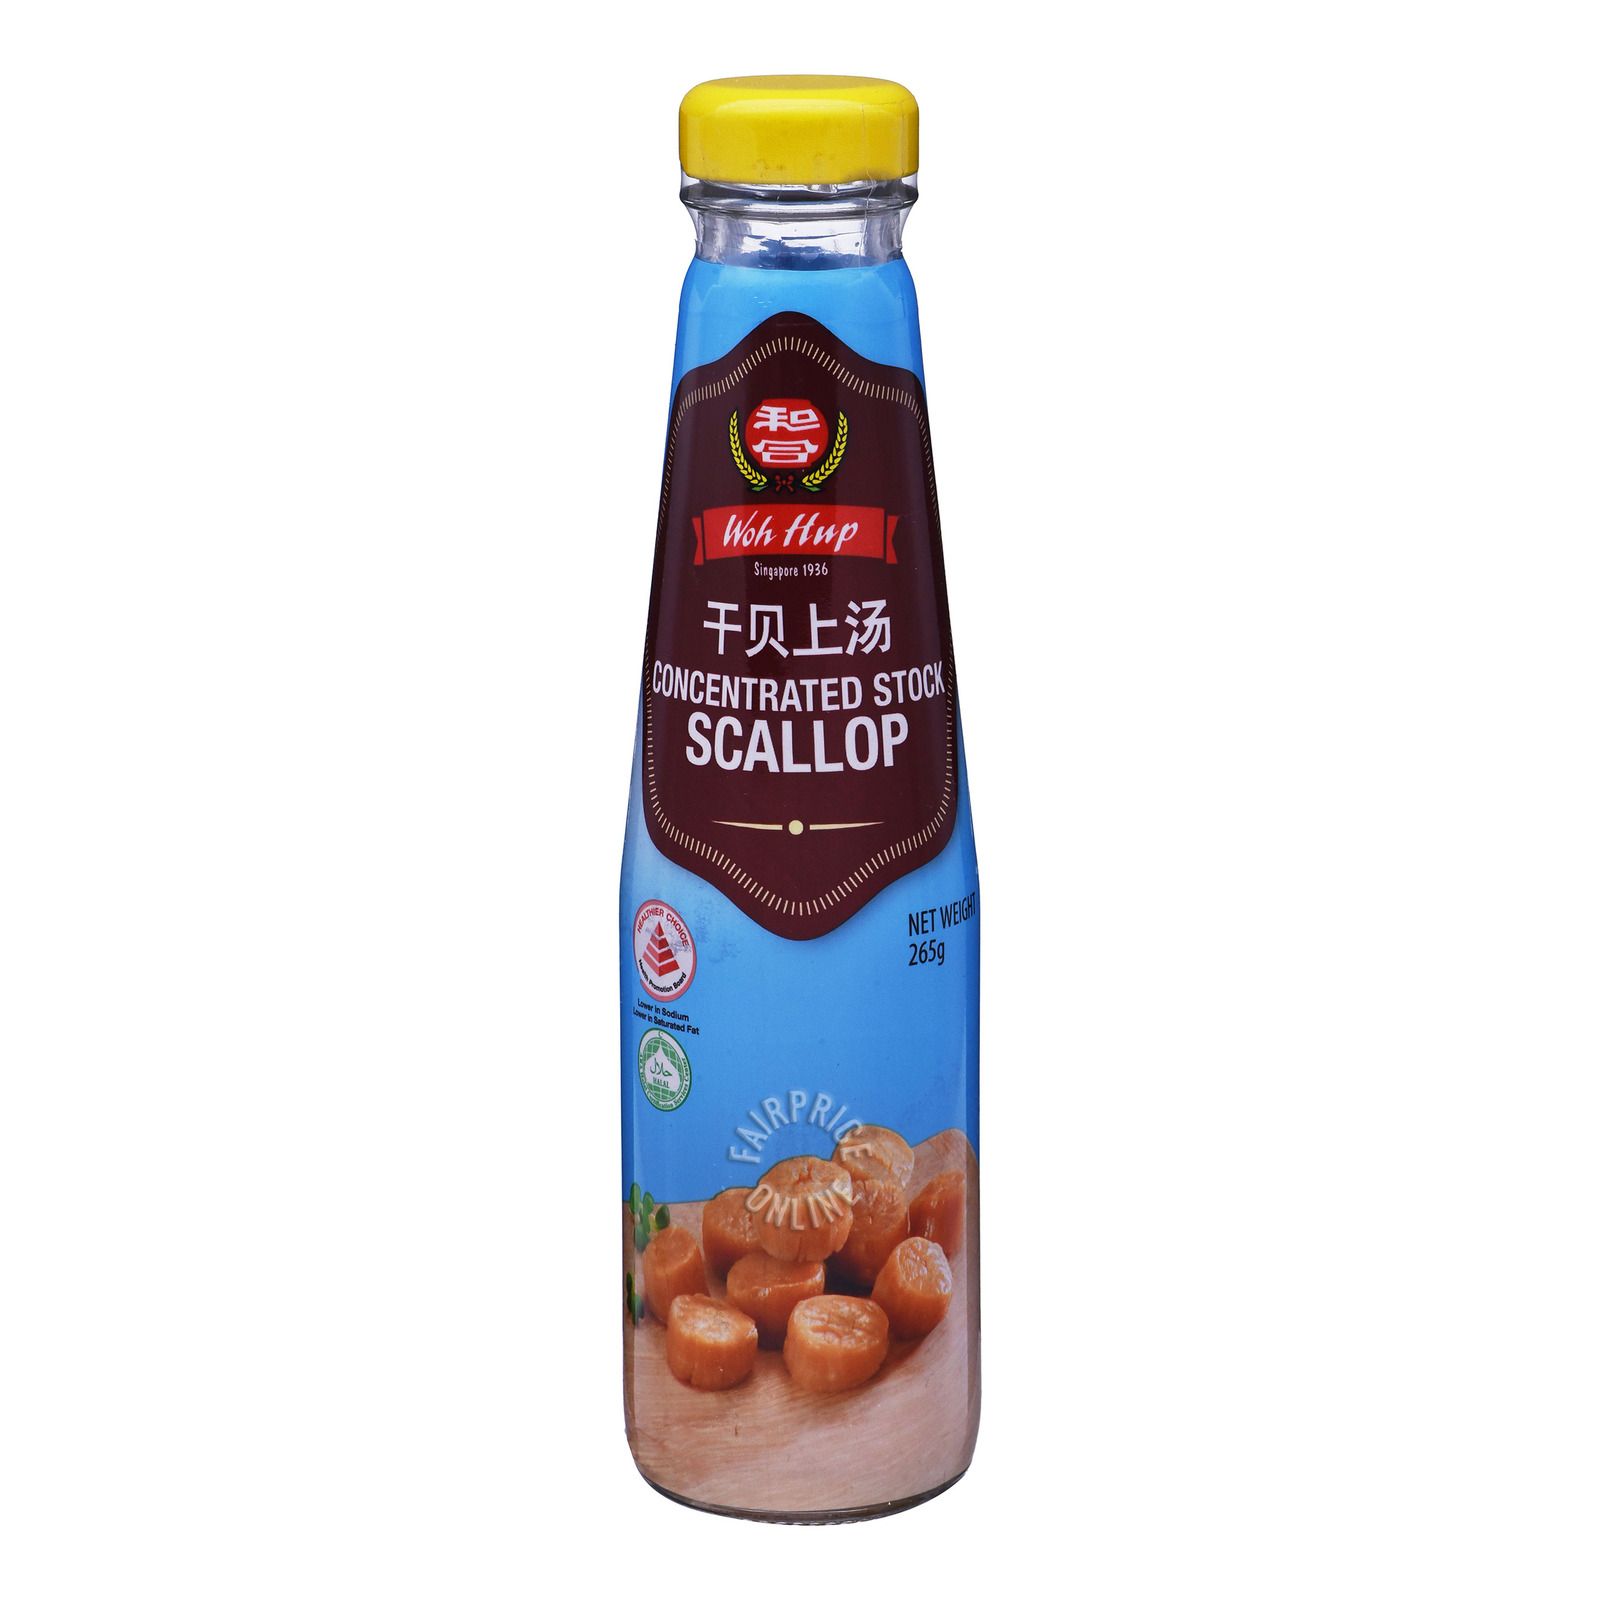 Woh Hup Concentrated Stock Sauce - Scallop